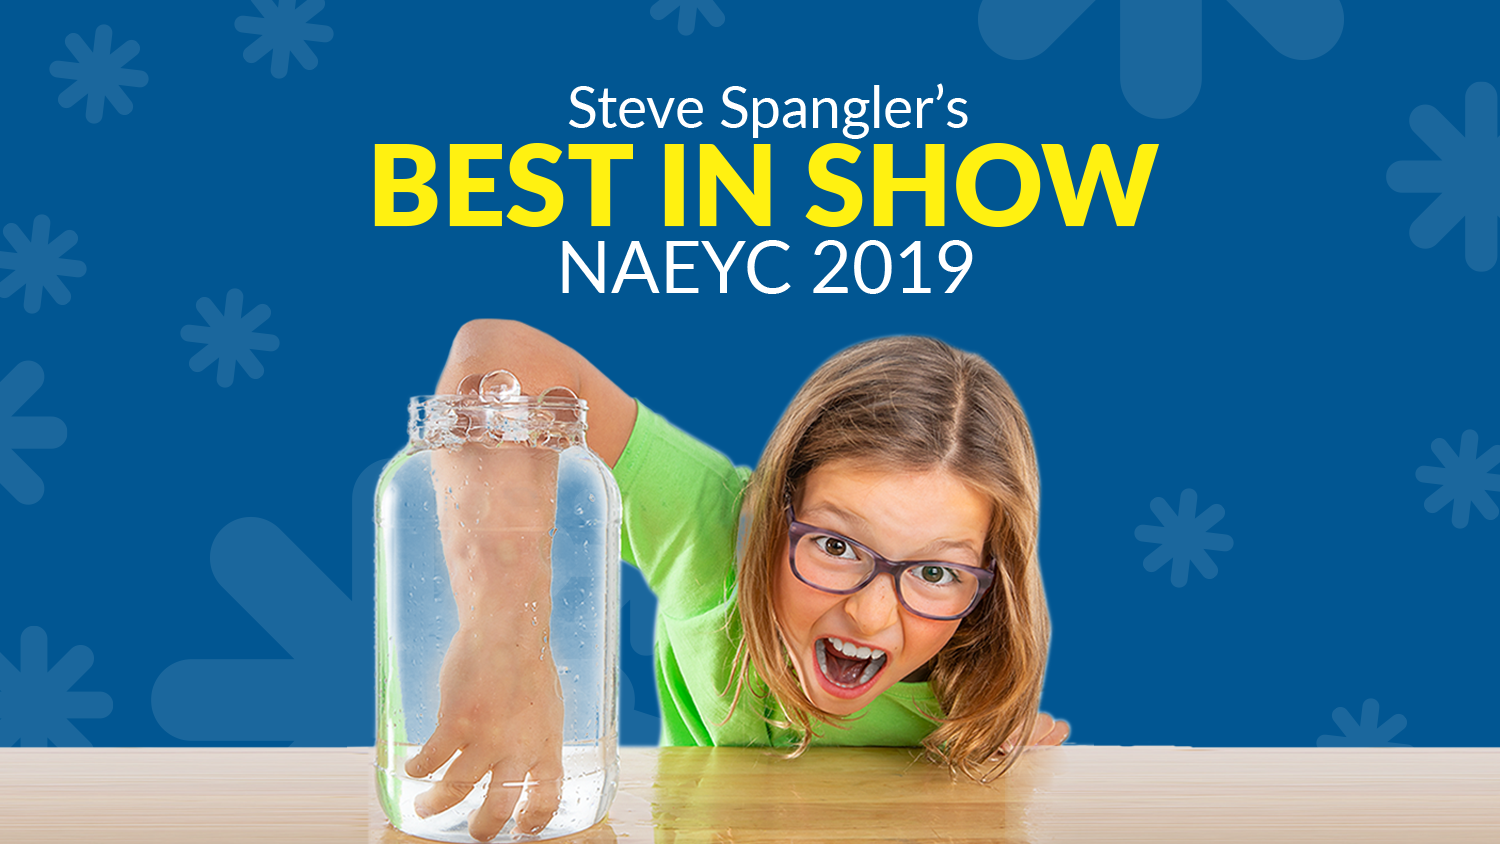 Best In Show - NAEYC 2019